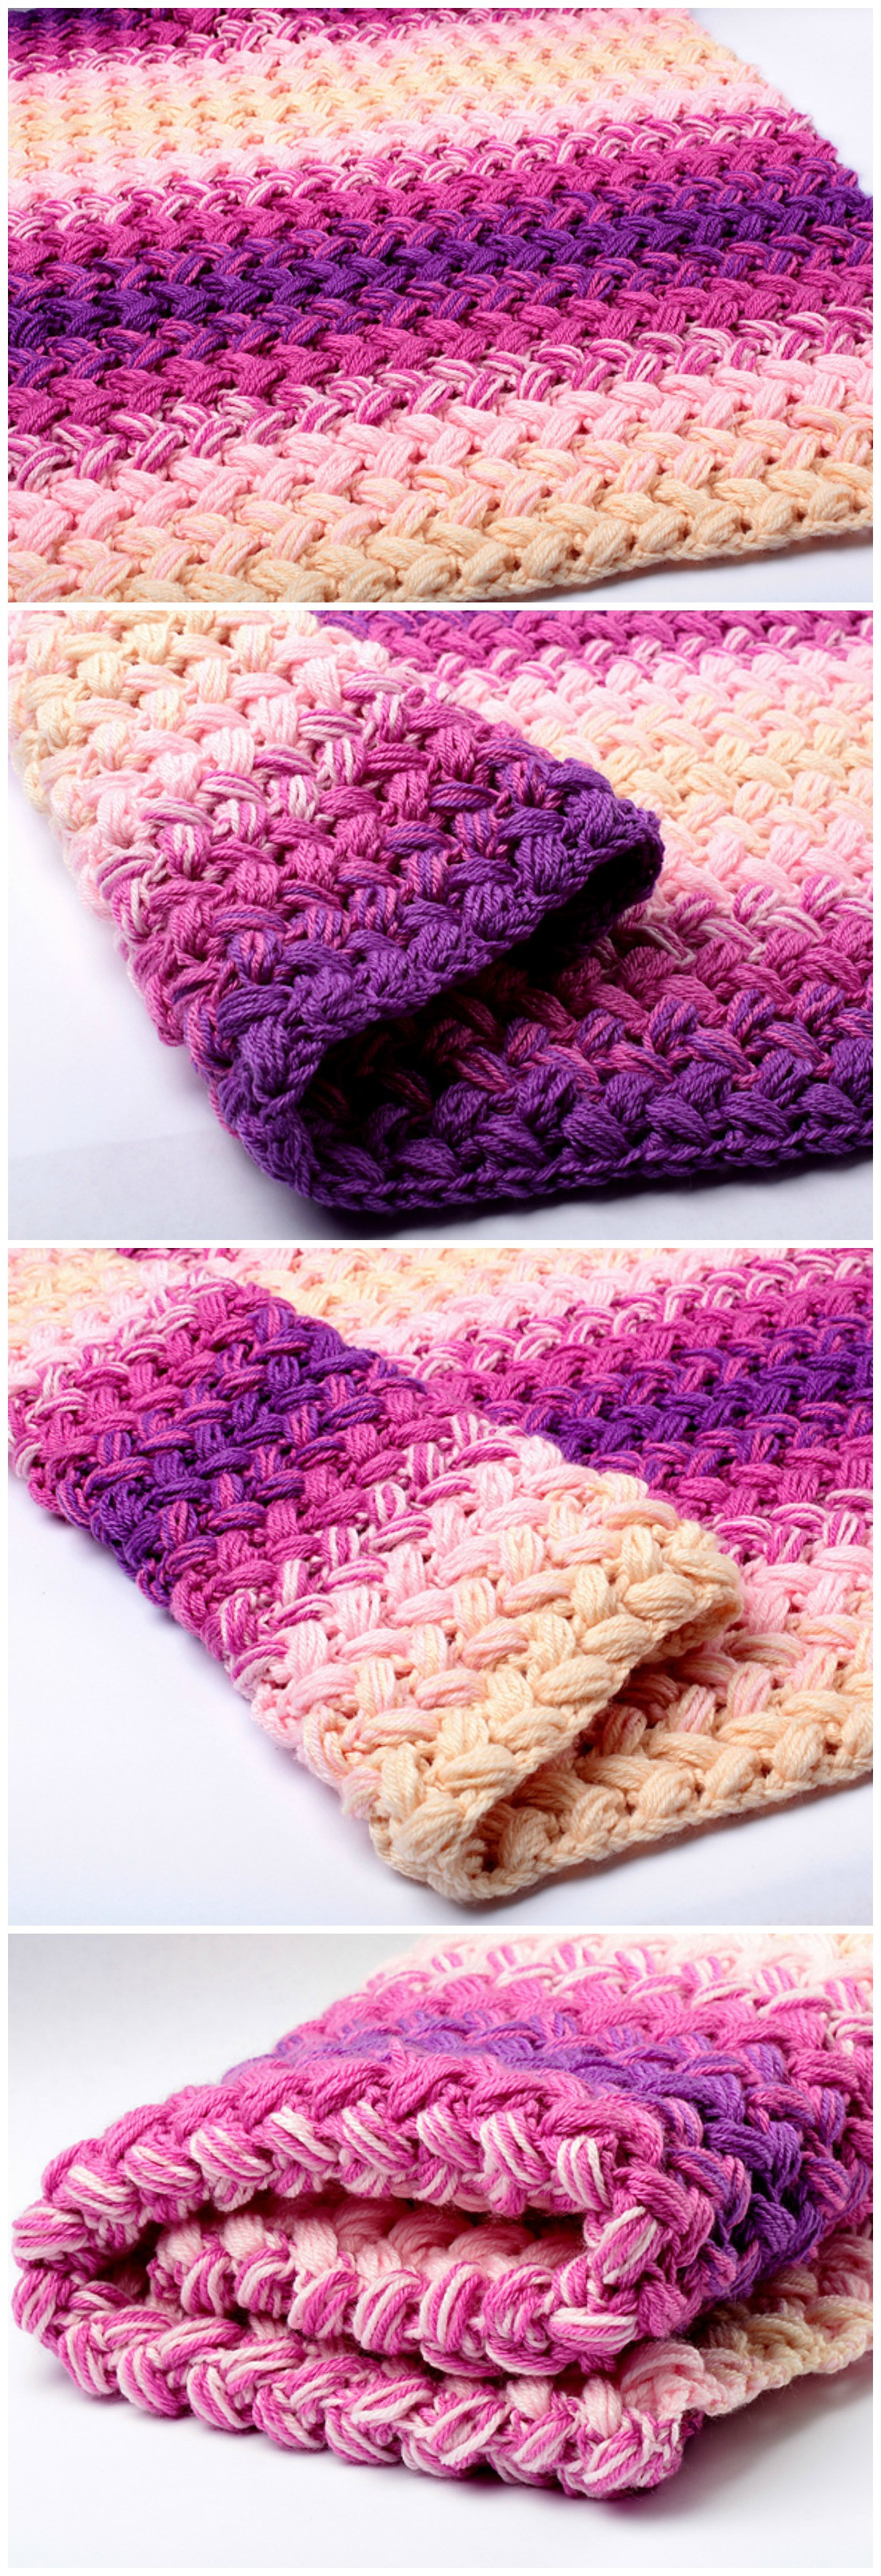 Unique Crochet Zig Zag Blanket Pretty Ideas Zig Zag Crochet Afghan Pattern Of New 43 Pics Zig Zag Crochet Afghan Pattern